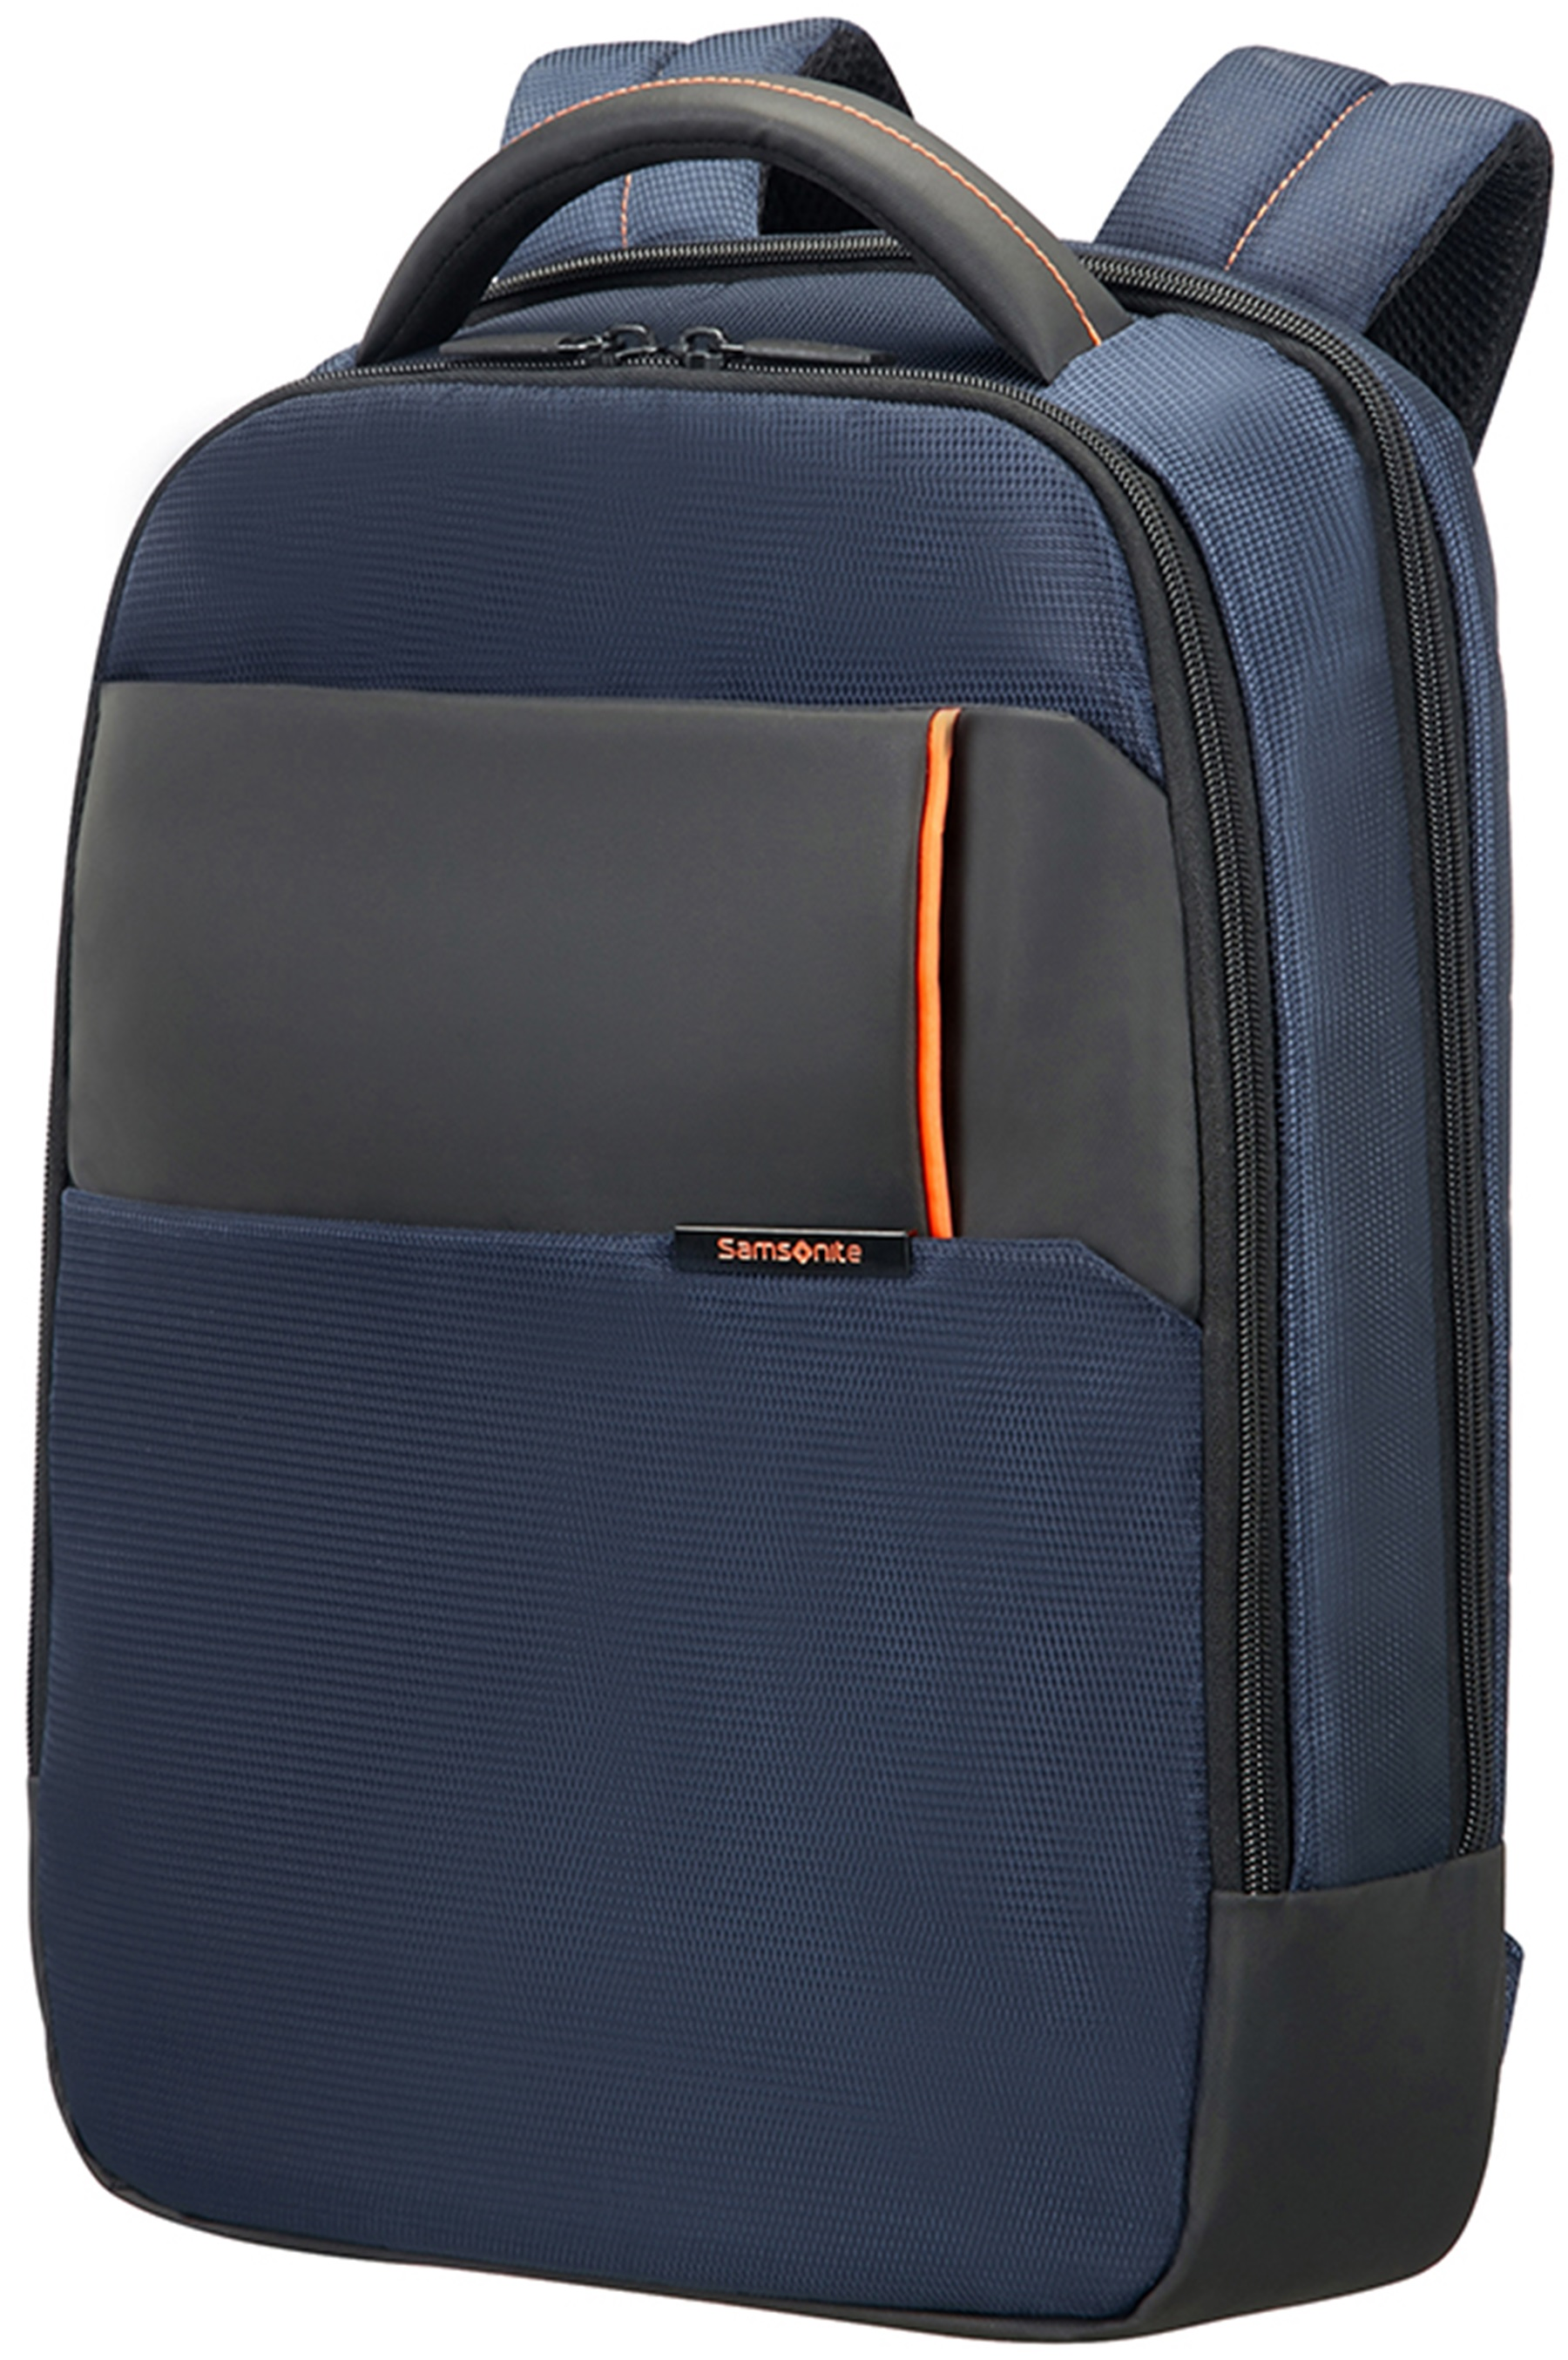 SAMSONITE - BORSE NOTEBOOK - 5414847720673